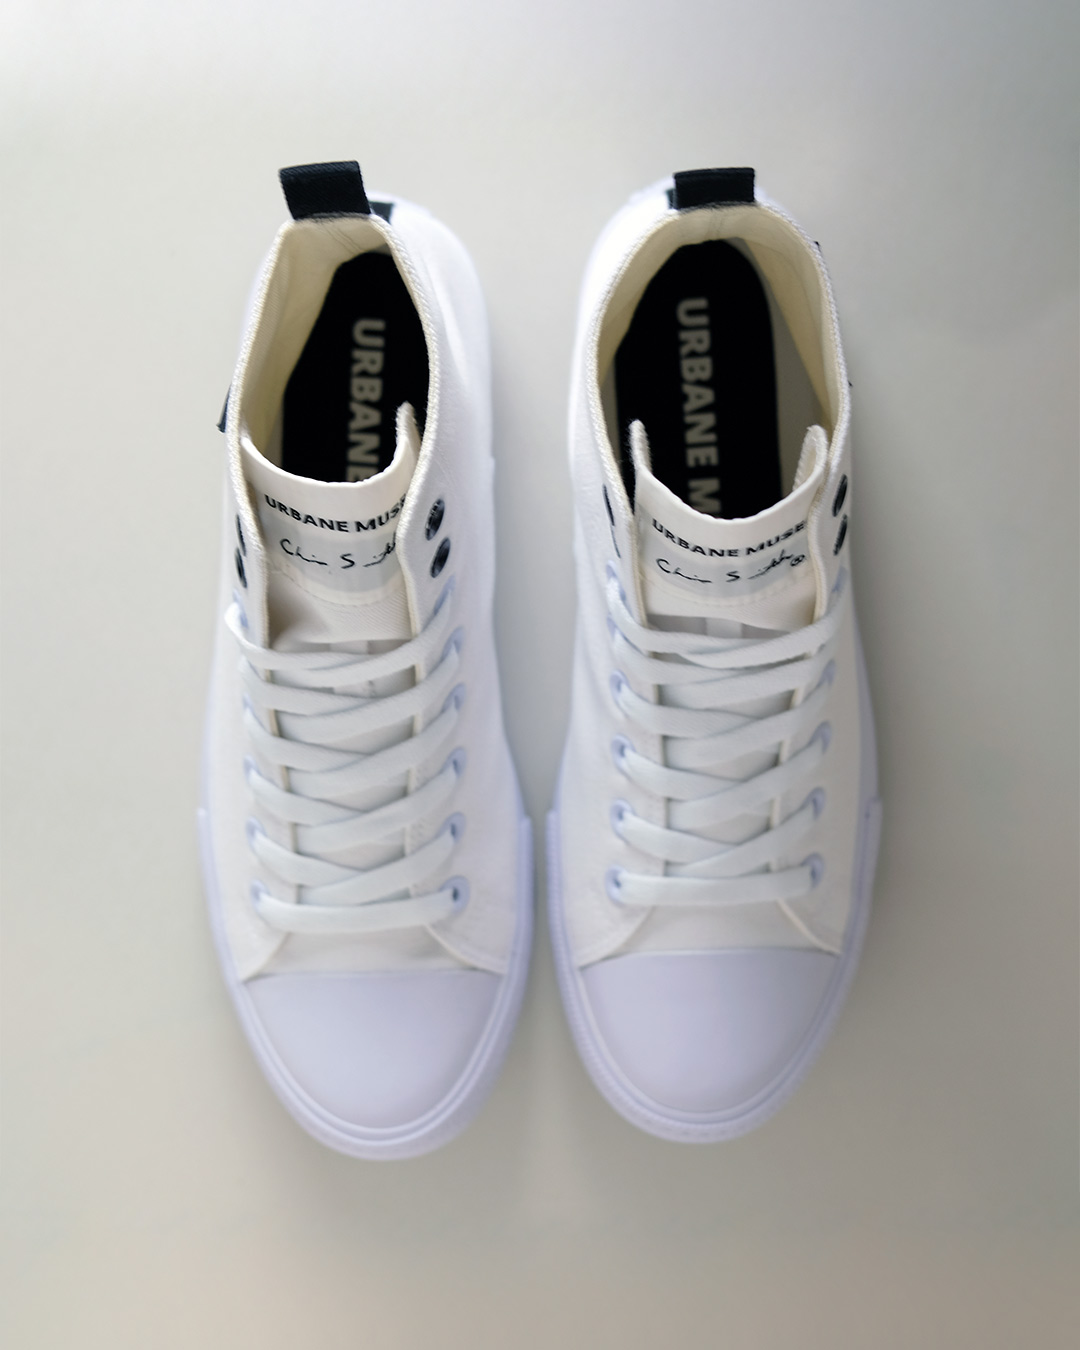 photo-4-URBANE-MUSE-CANVAS-SNEAKER